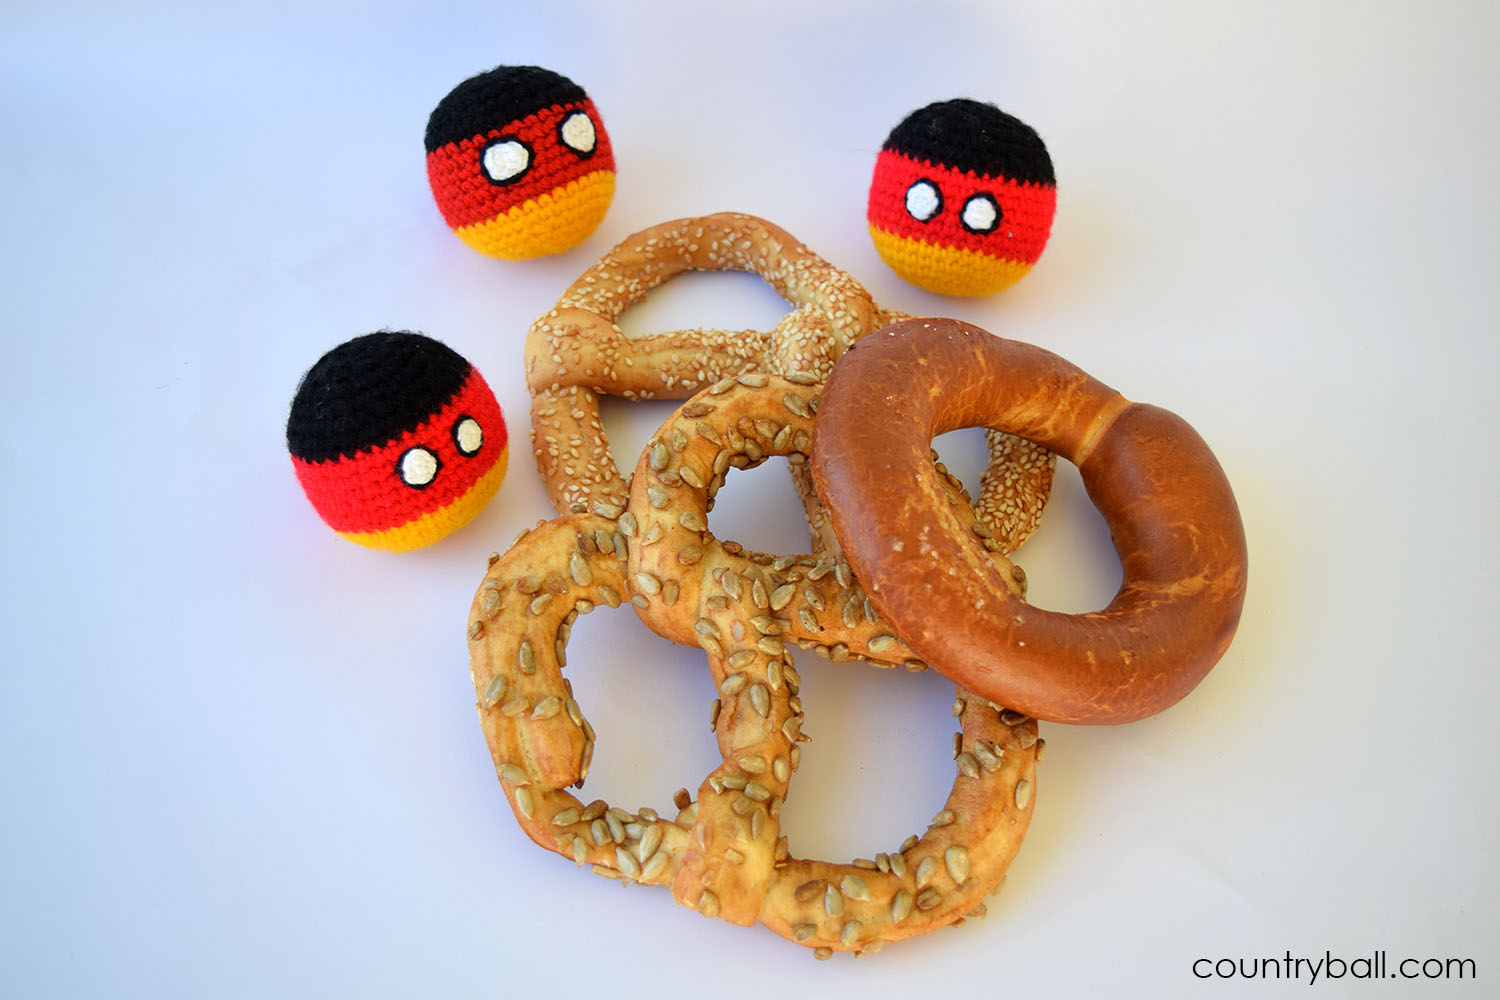 Germanyballs with some Pretzels